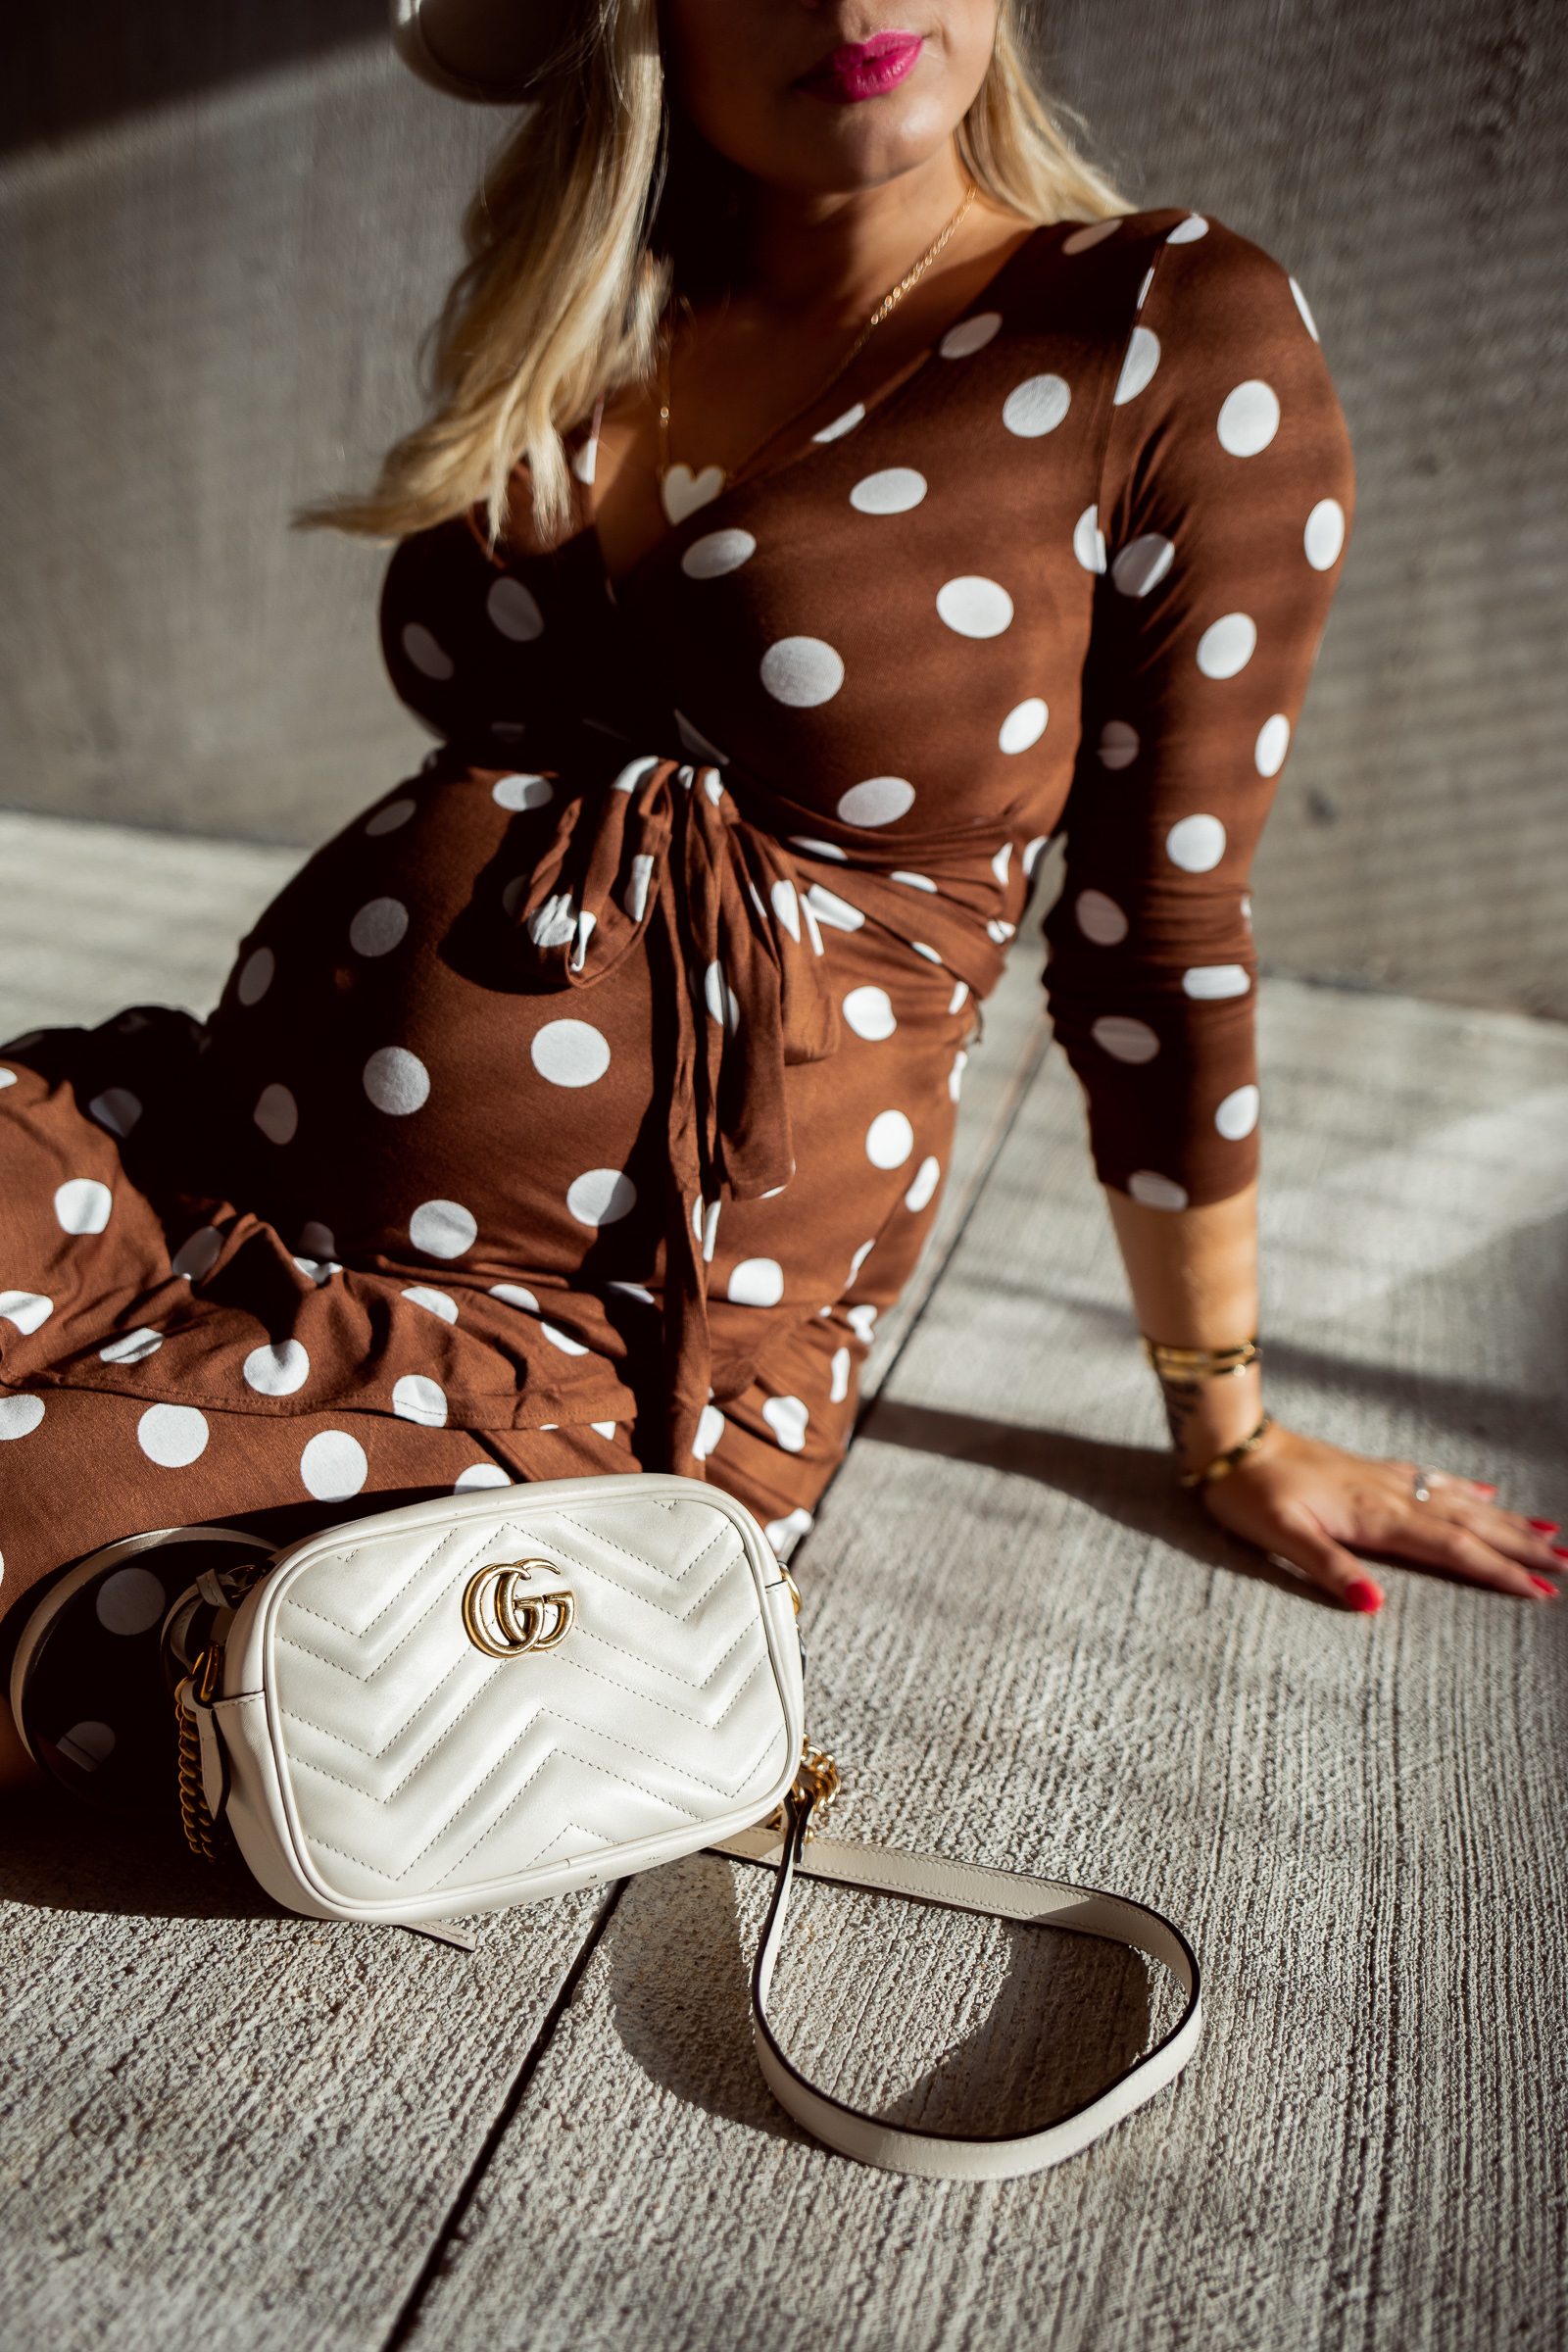 houston fashion blogger Elly Brown wears a maternity polka dot dress from HM along with her Gucci bag